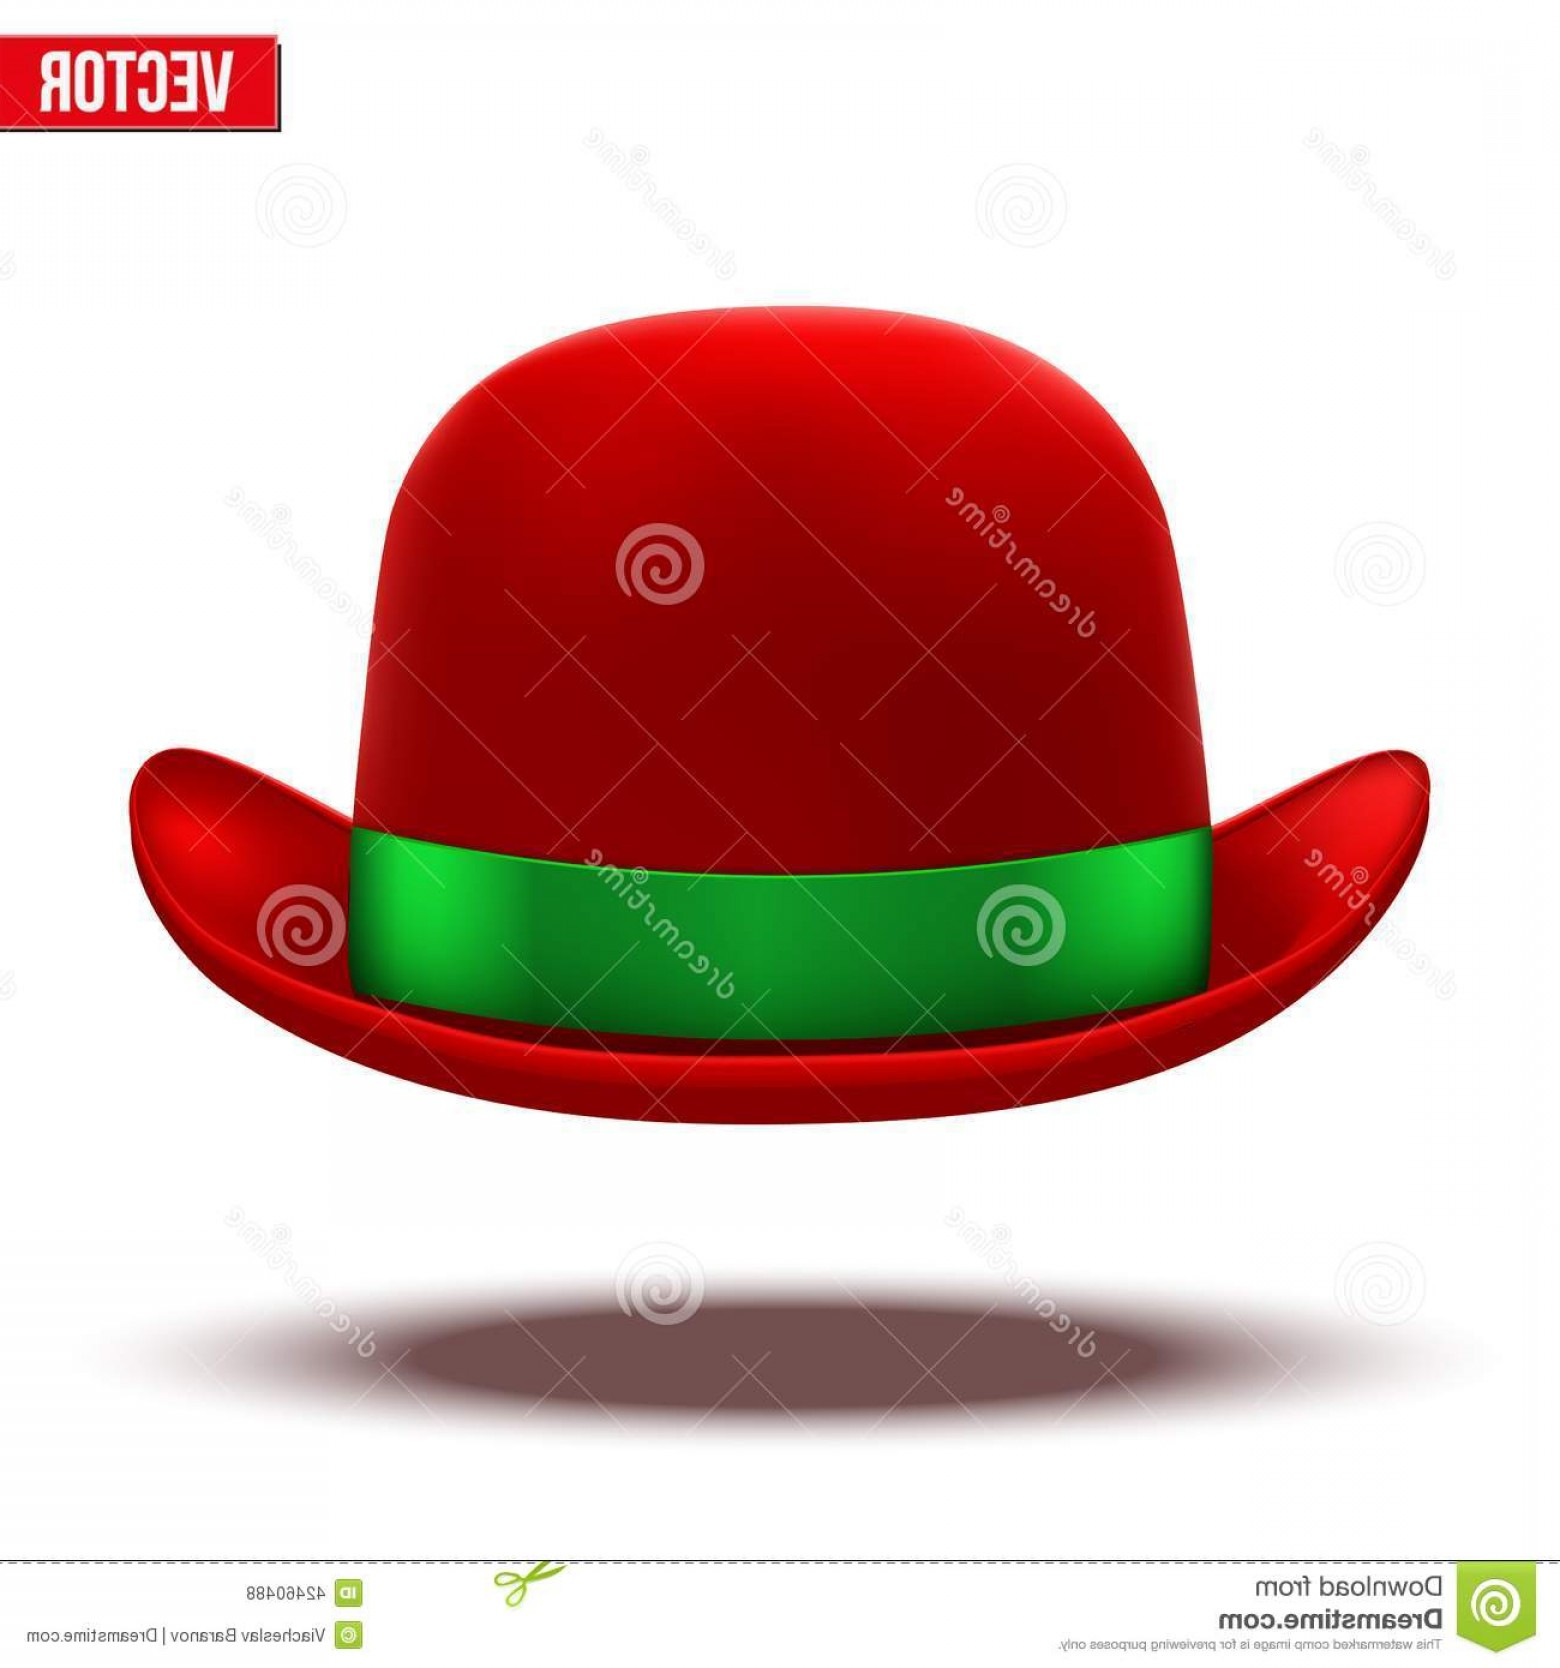 Bowler Hat Vector: Stock Illustration Red Bowler Hat White Background Vector Silk Green Ribbon Illustration Isolated Image